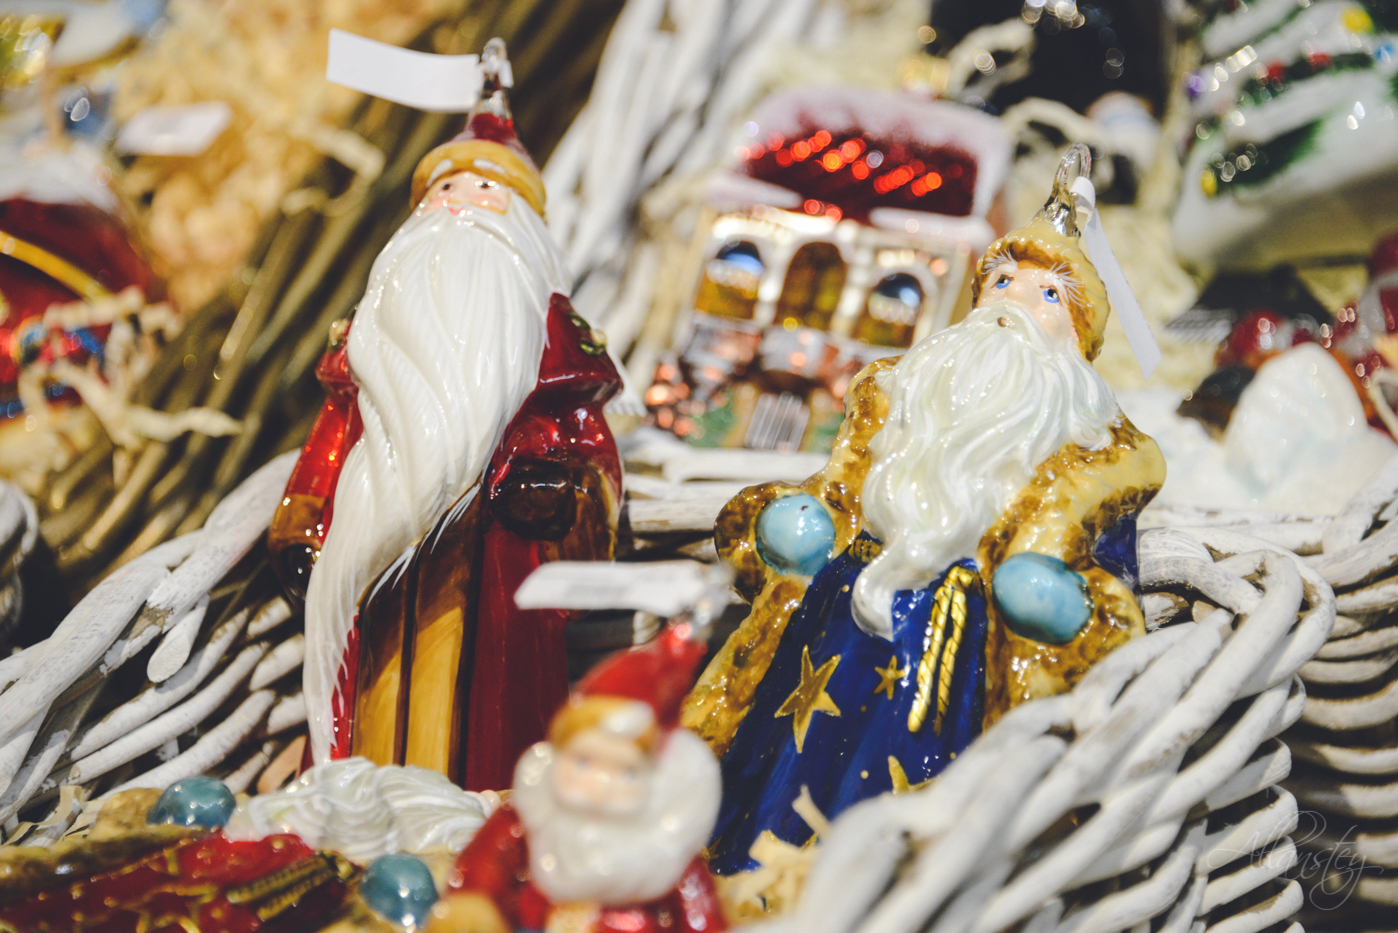 Ded Moroz Christmas holiday decorations